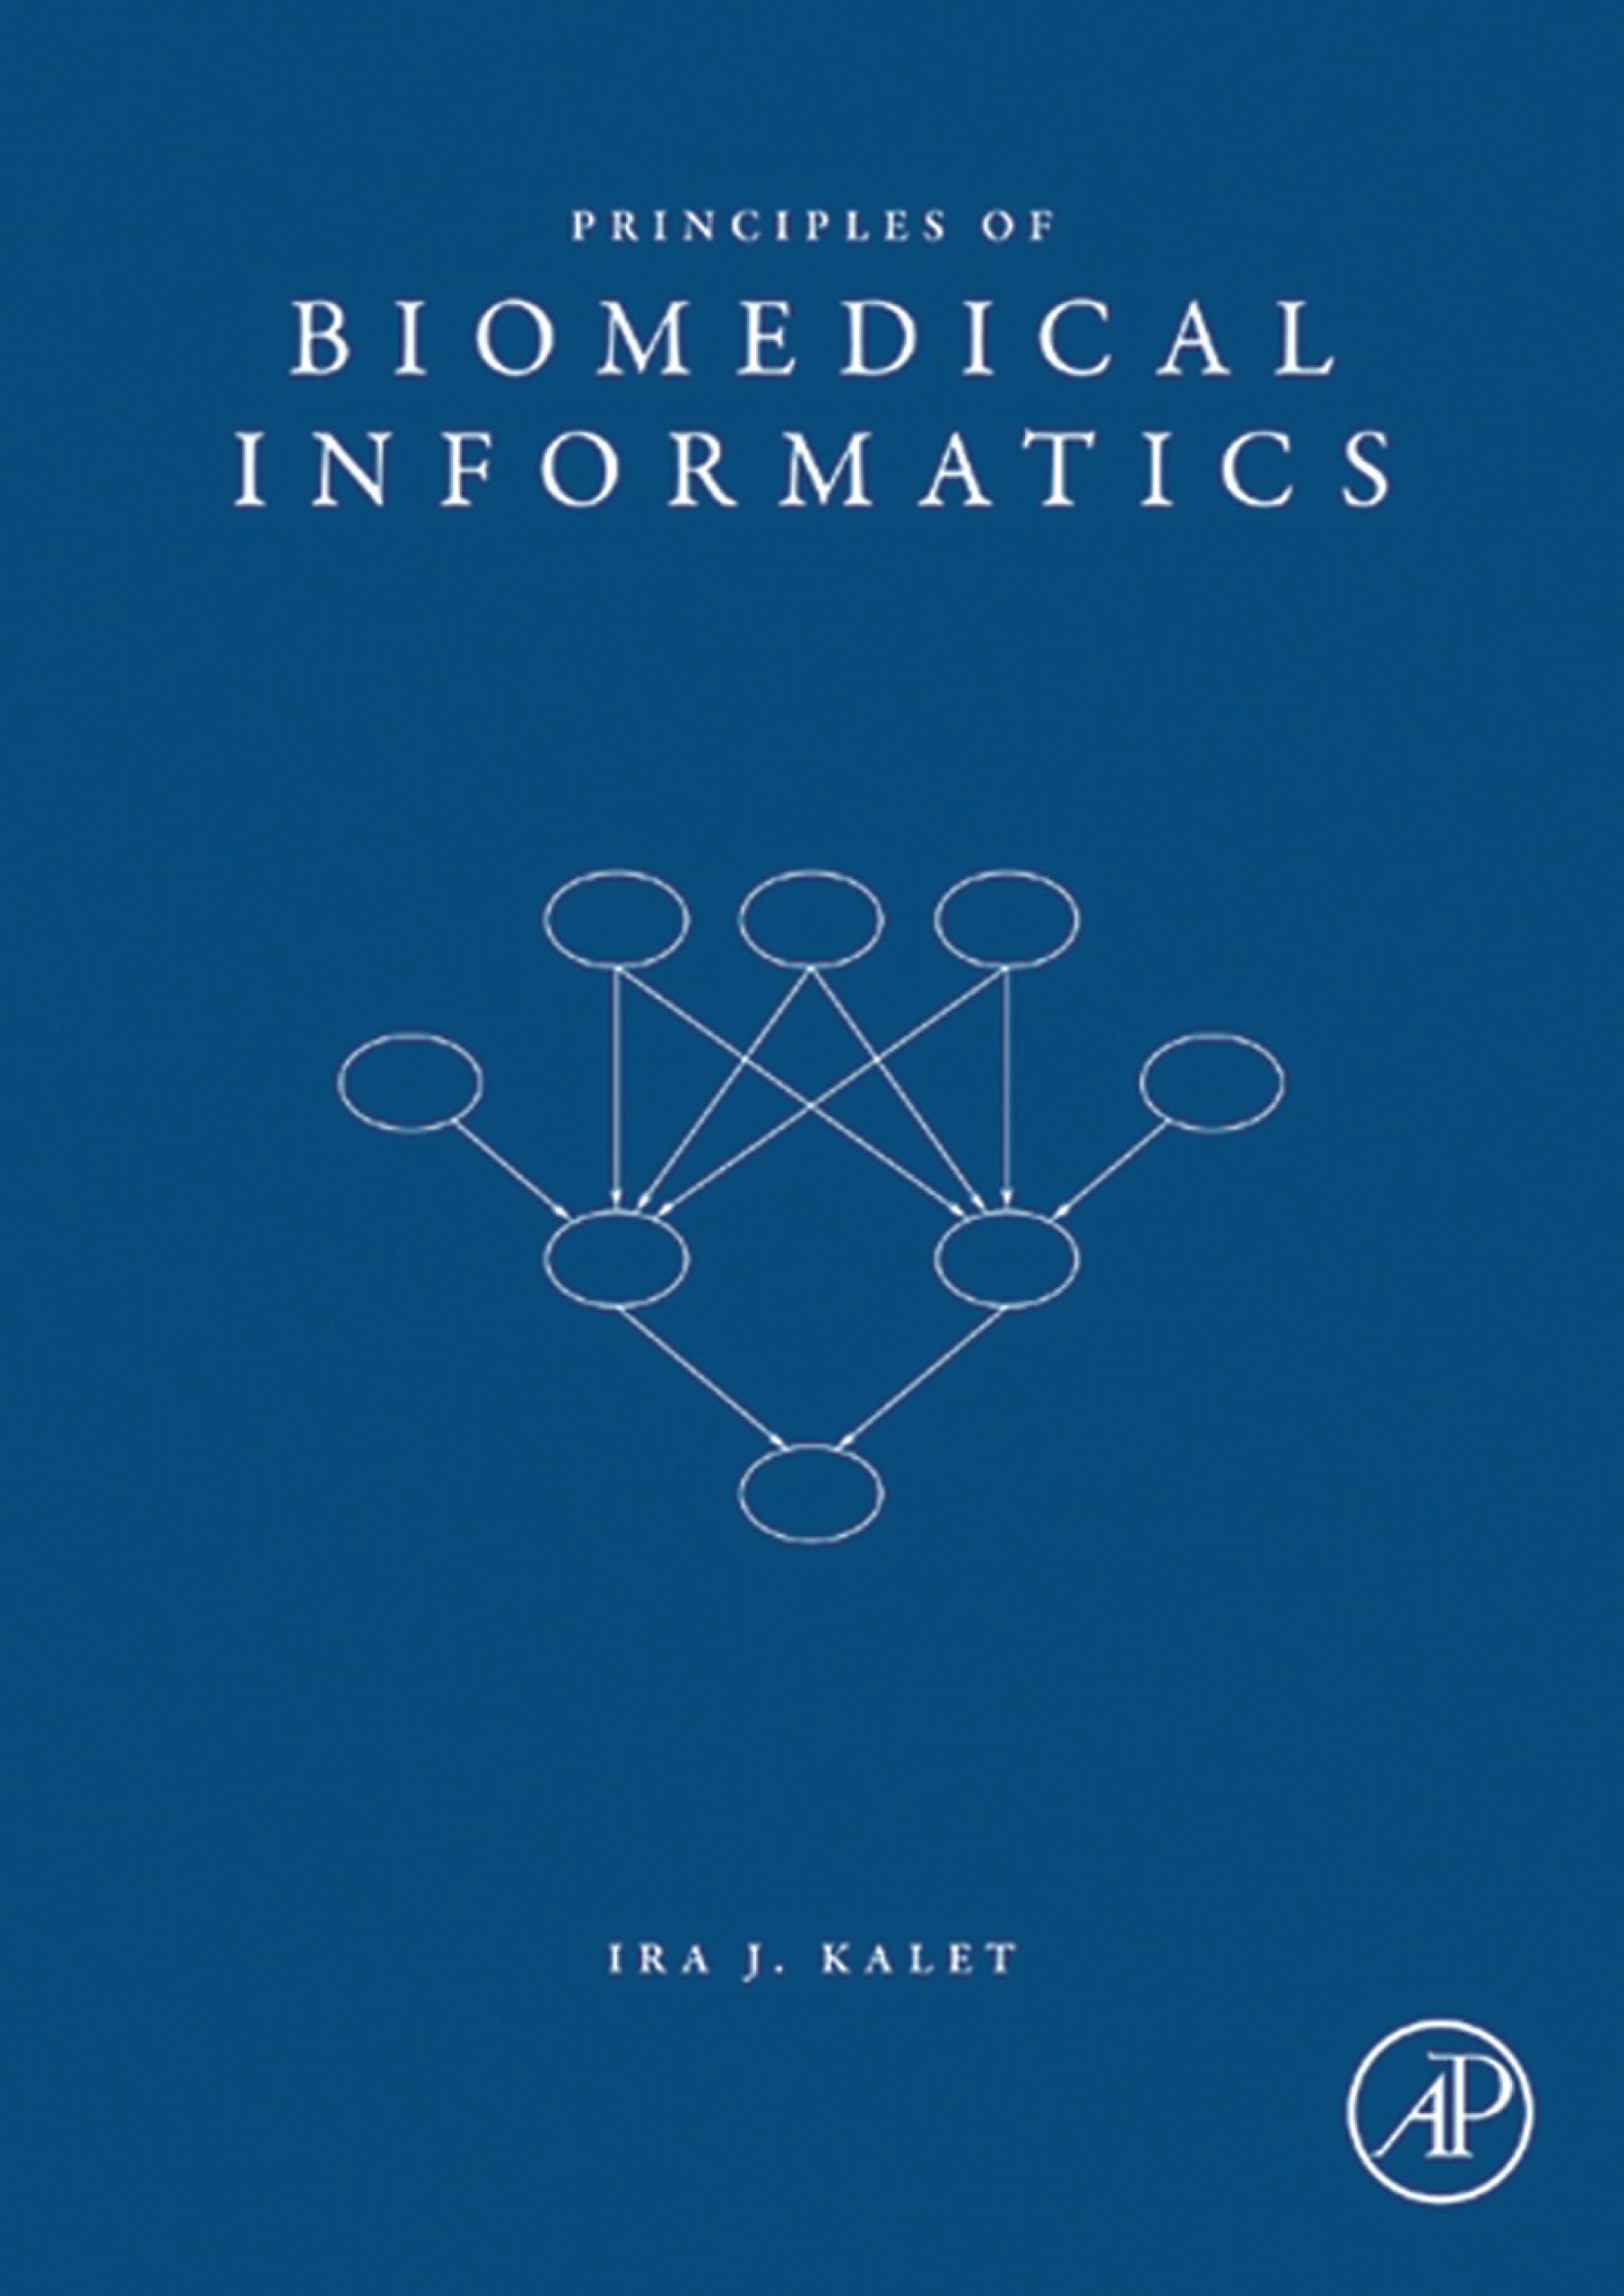 Download Principles Of Biomedical Informatics 